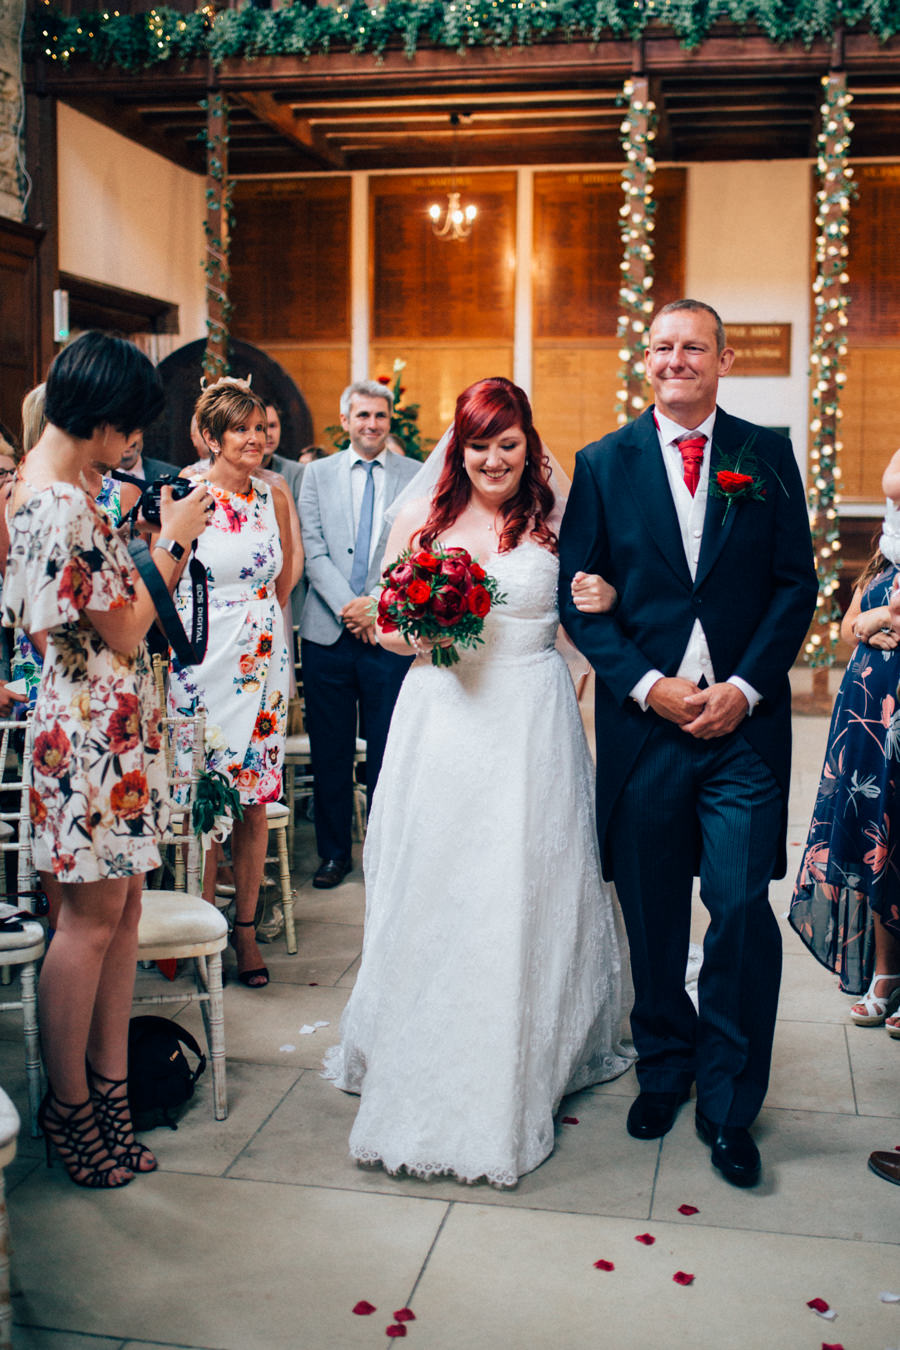 A stunning wedding in Hastings with a gorgeous redhead bride, images by Nikki van der Molen (22)